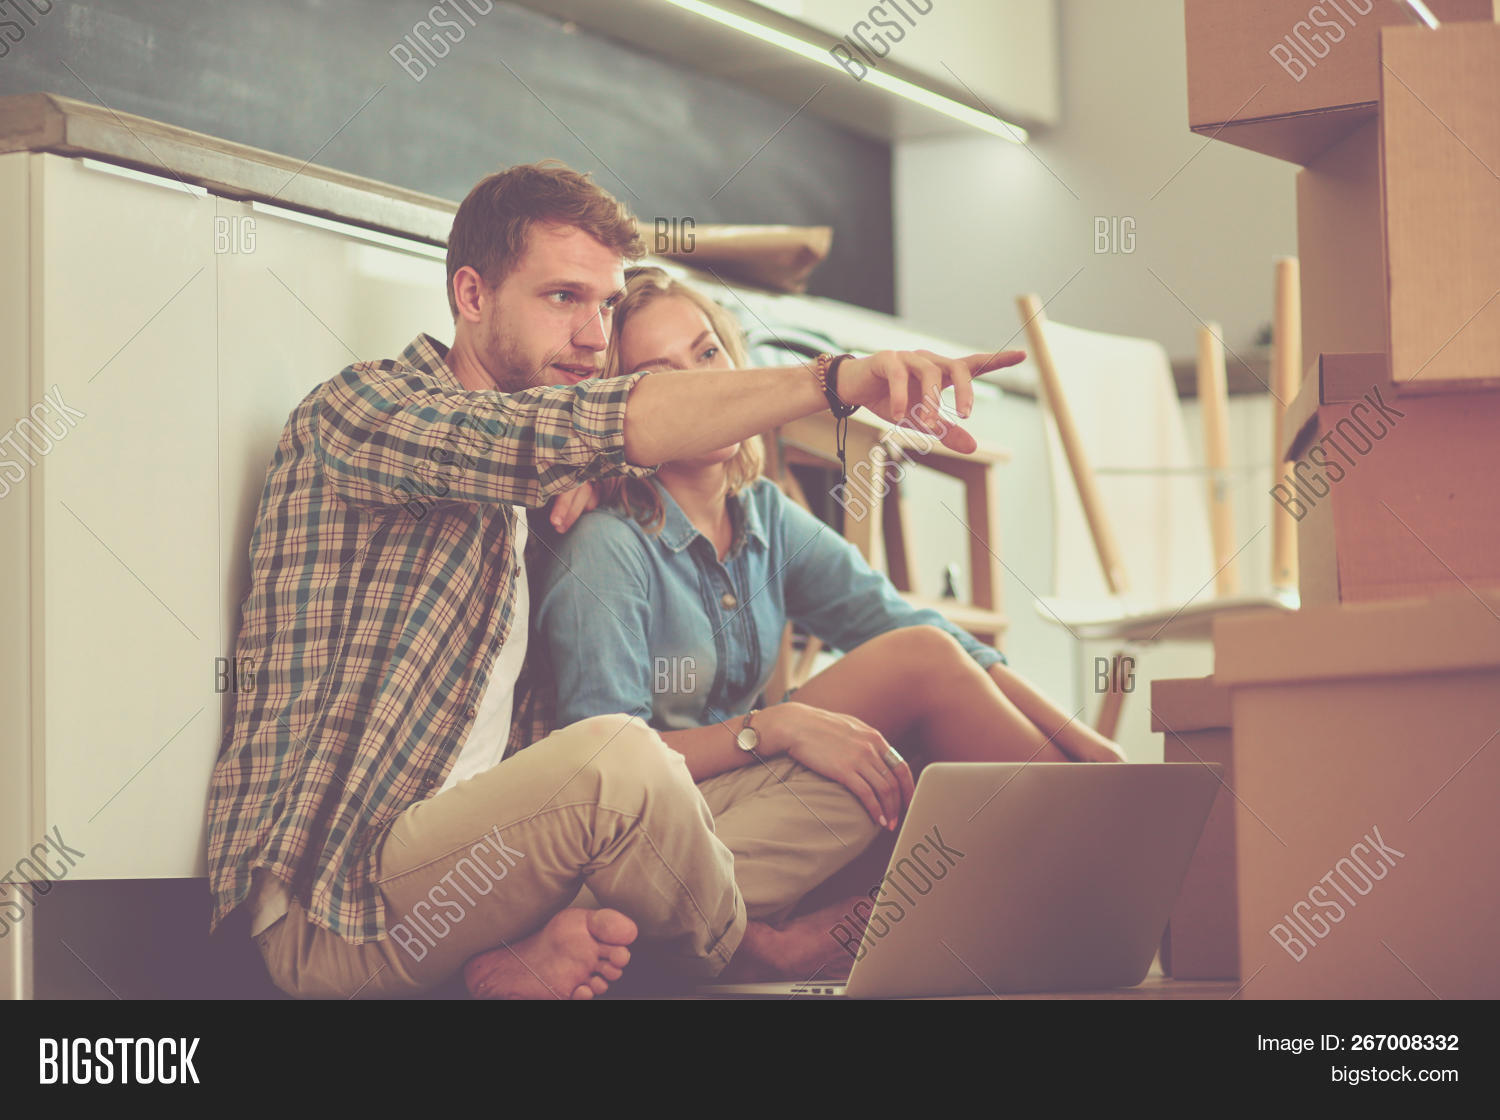 adult,apartment,beginnings,box,break,bright,cardboard,casual,container,couple,daylight,domestic,family,female,floor,hipster,home,homeowner,house,husband,indoors,laptop,lifestyle,looking,love,male,men,moving,movinghouse,new,owner,packing,pause,realpeople,relaxing,rent,rental,sitting,talking,togetherness,two,unpacking,wife